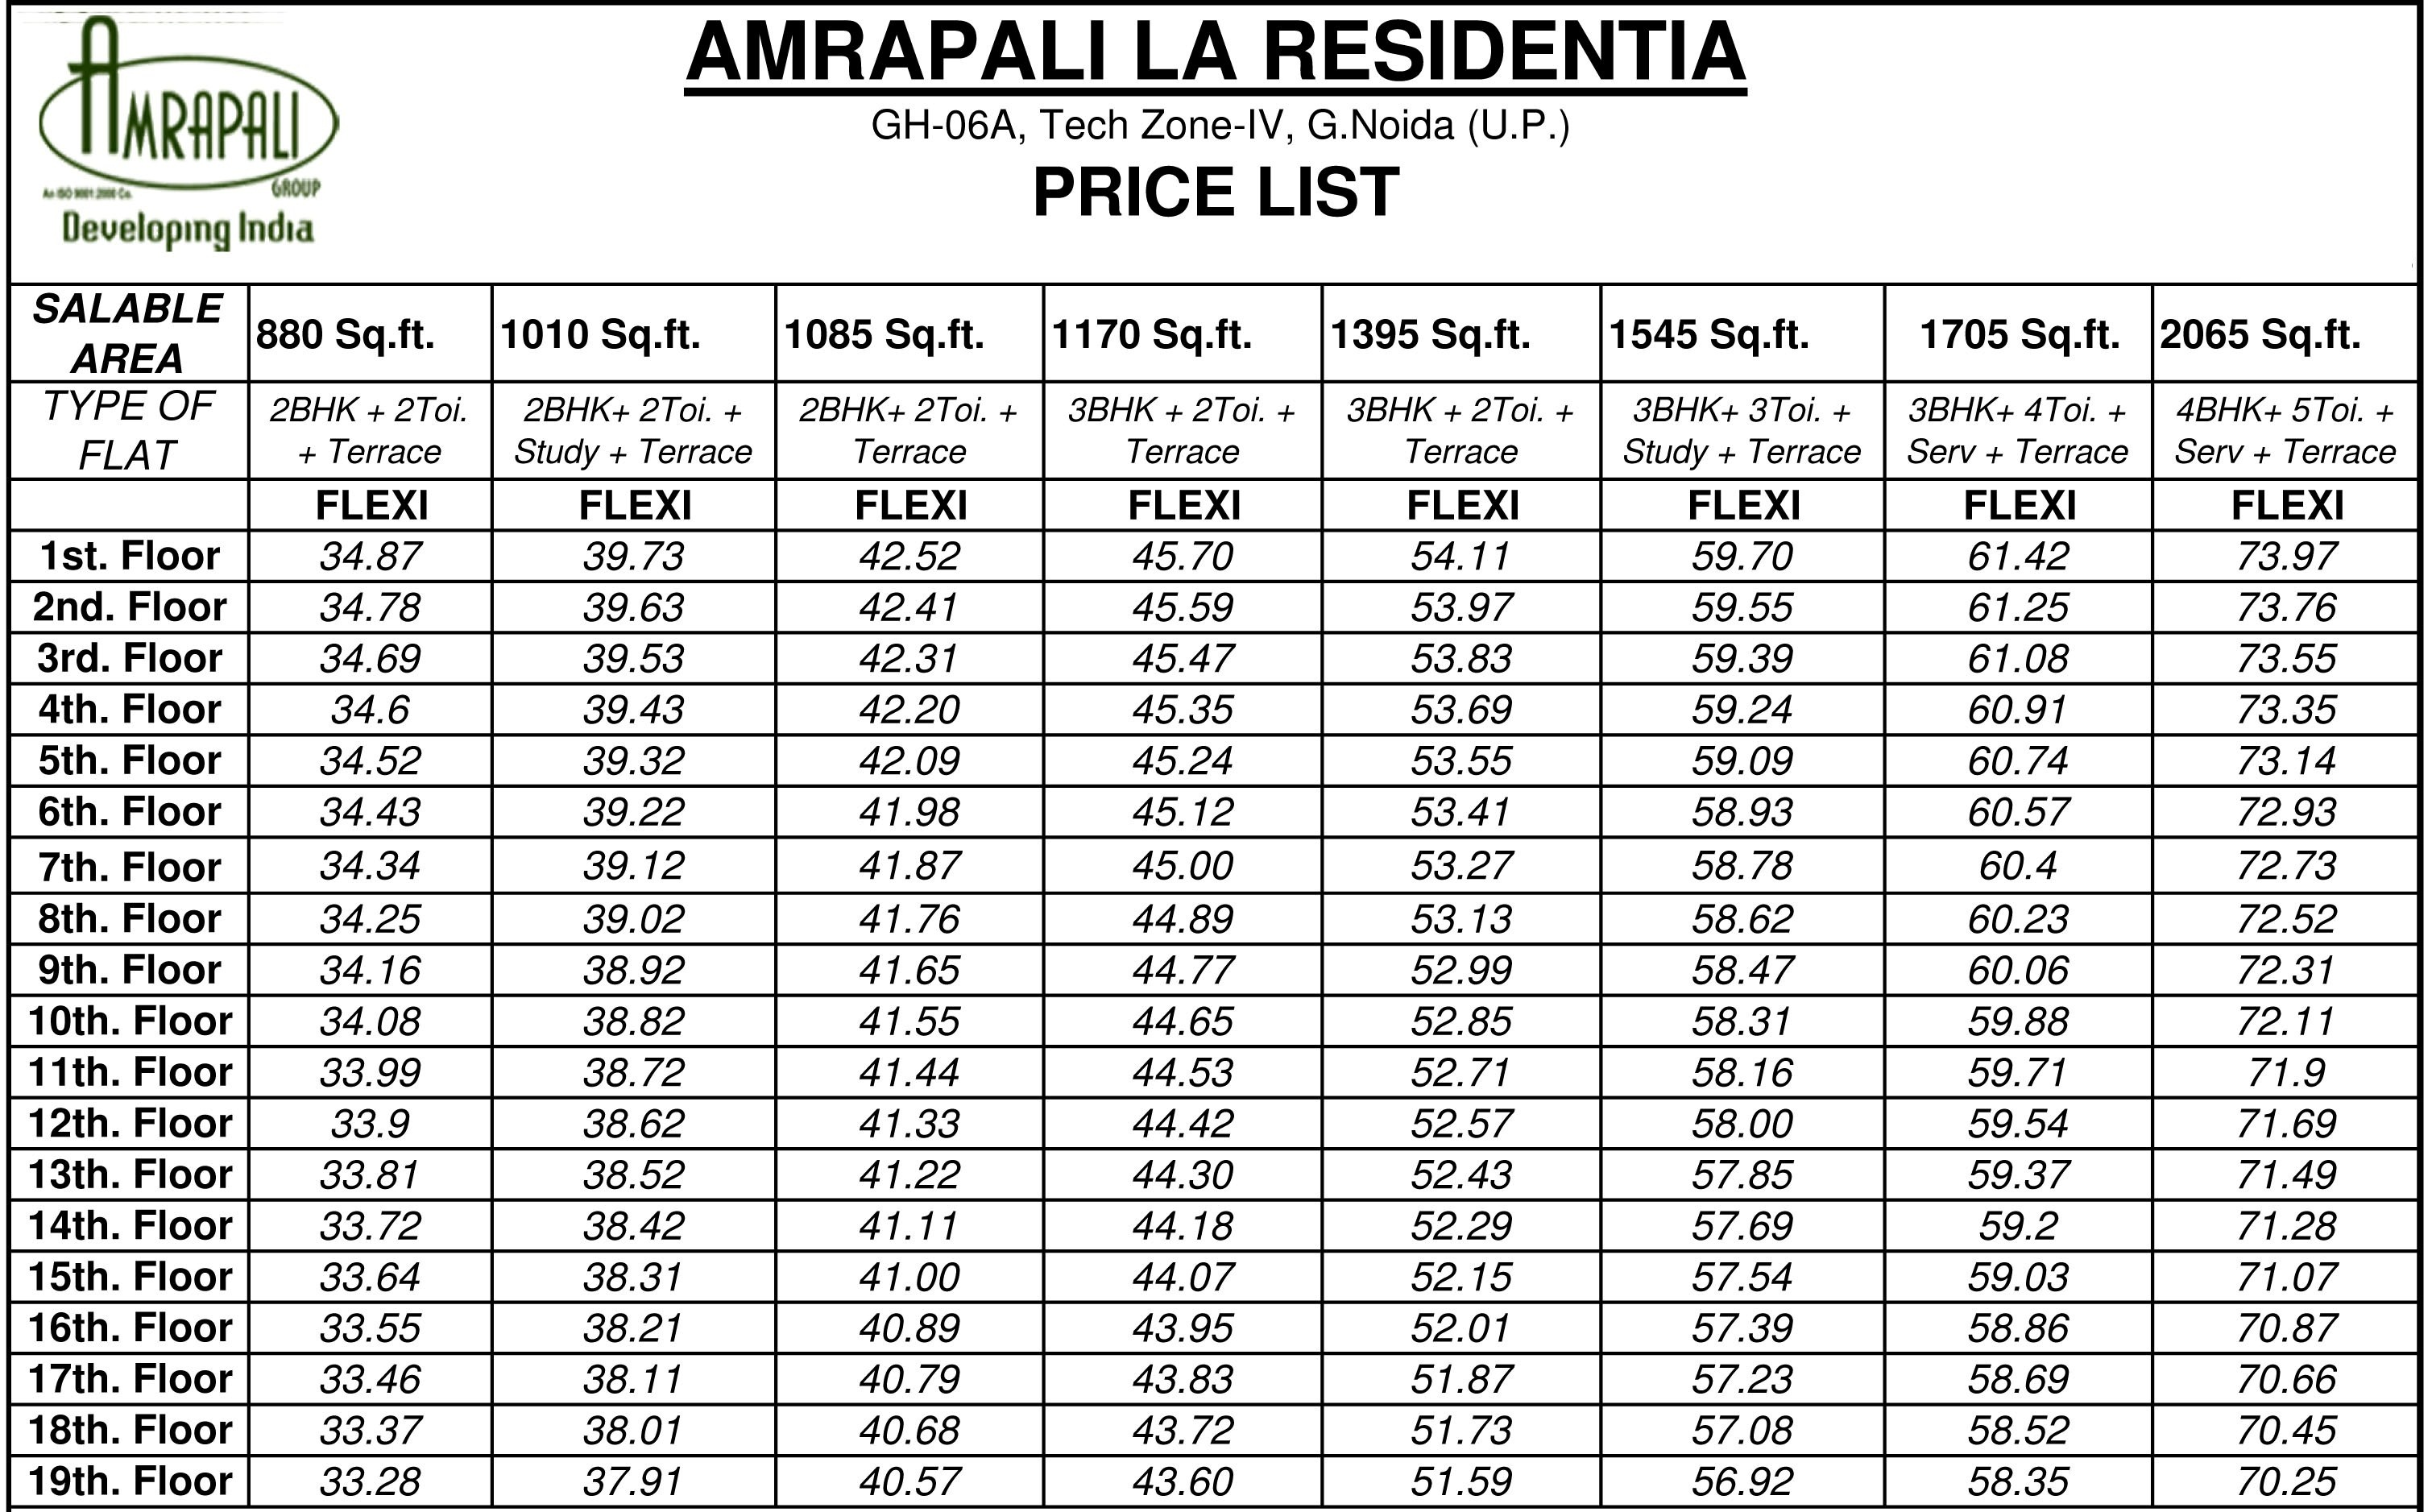 amrapali la residentia price list2